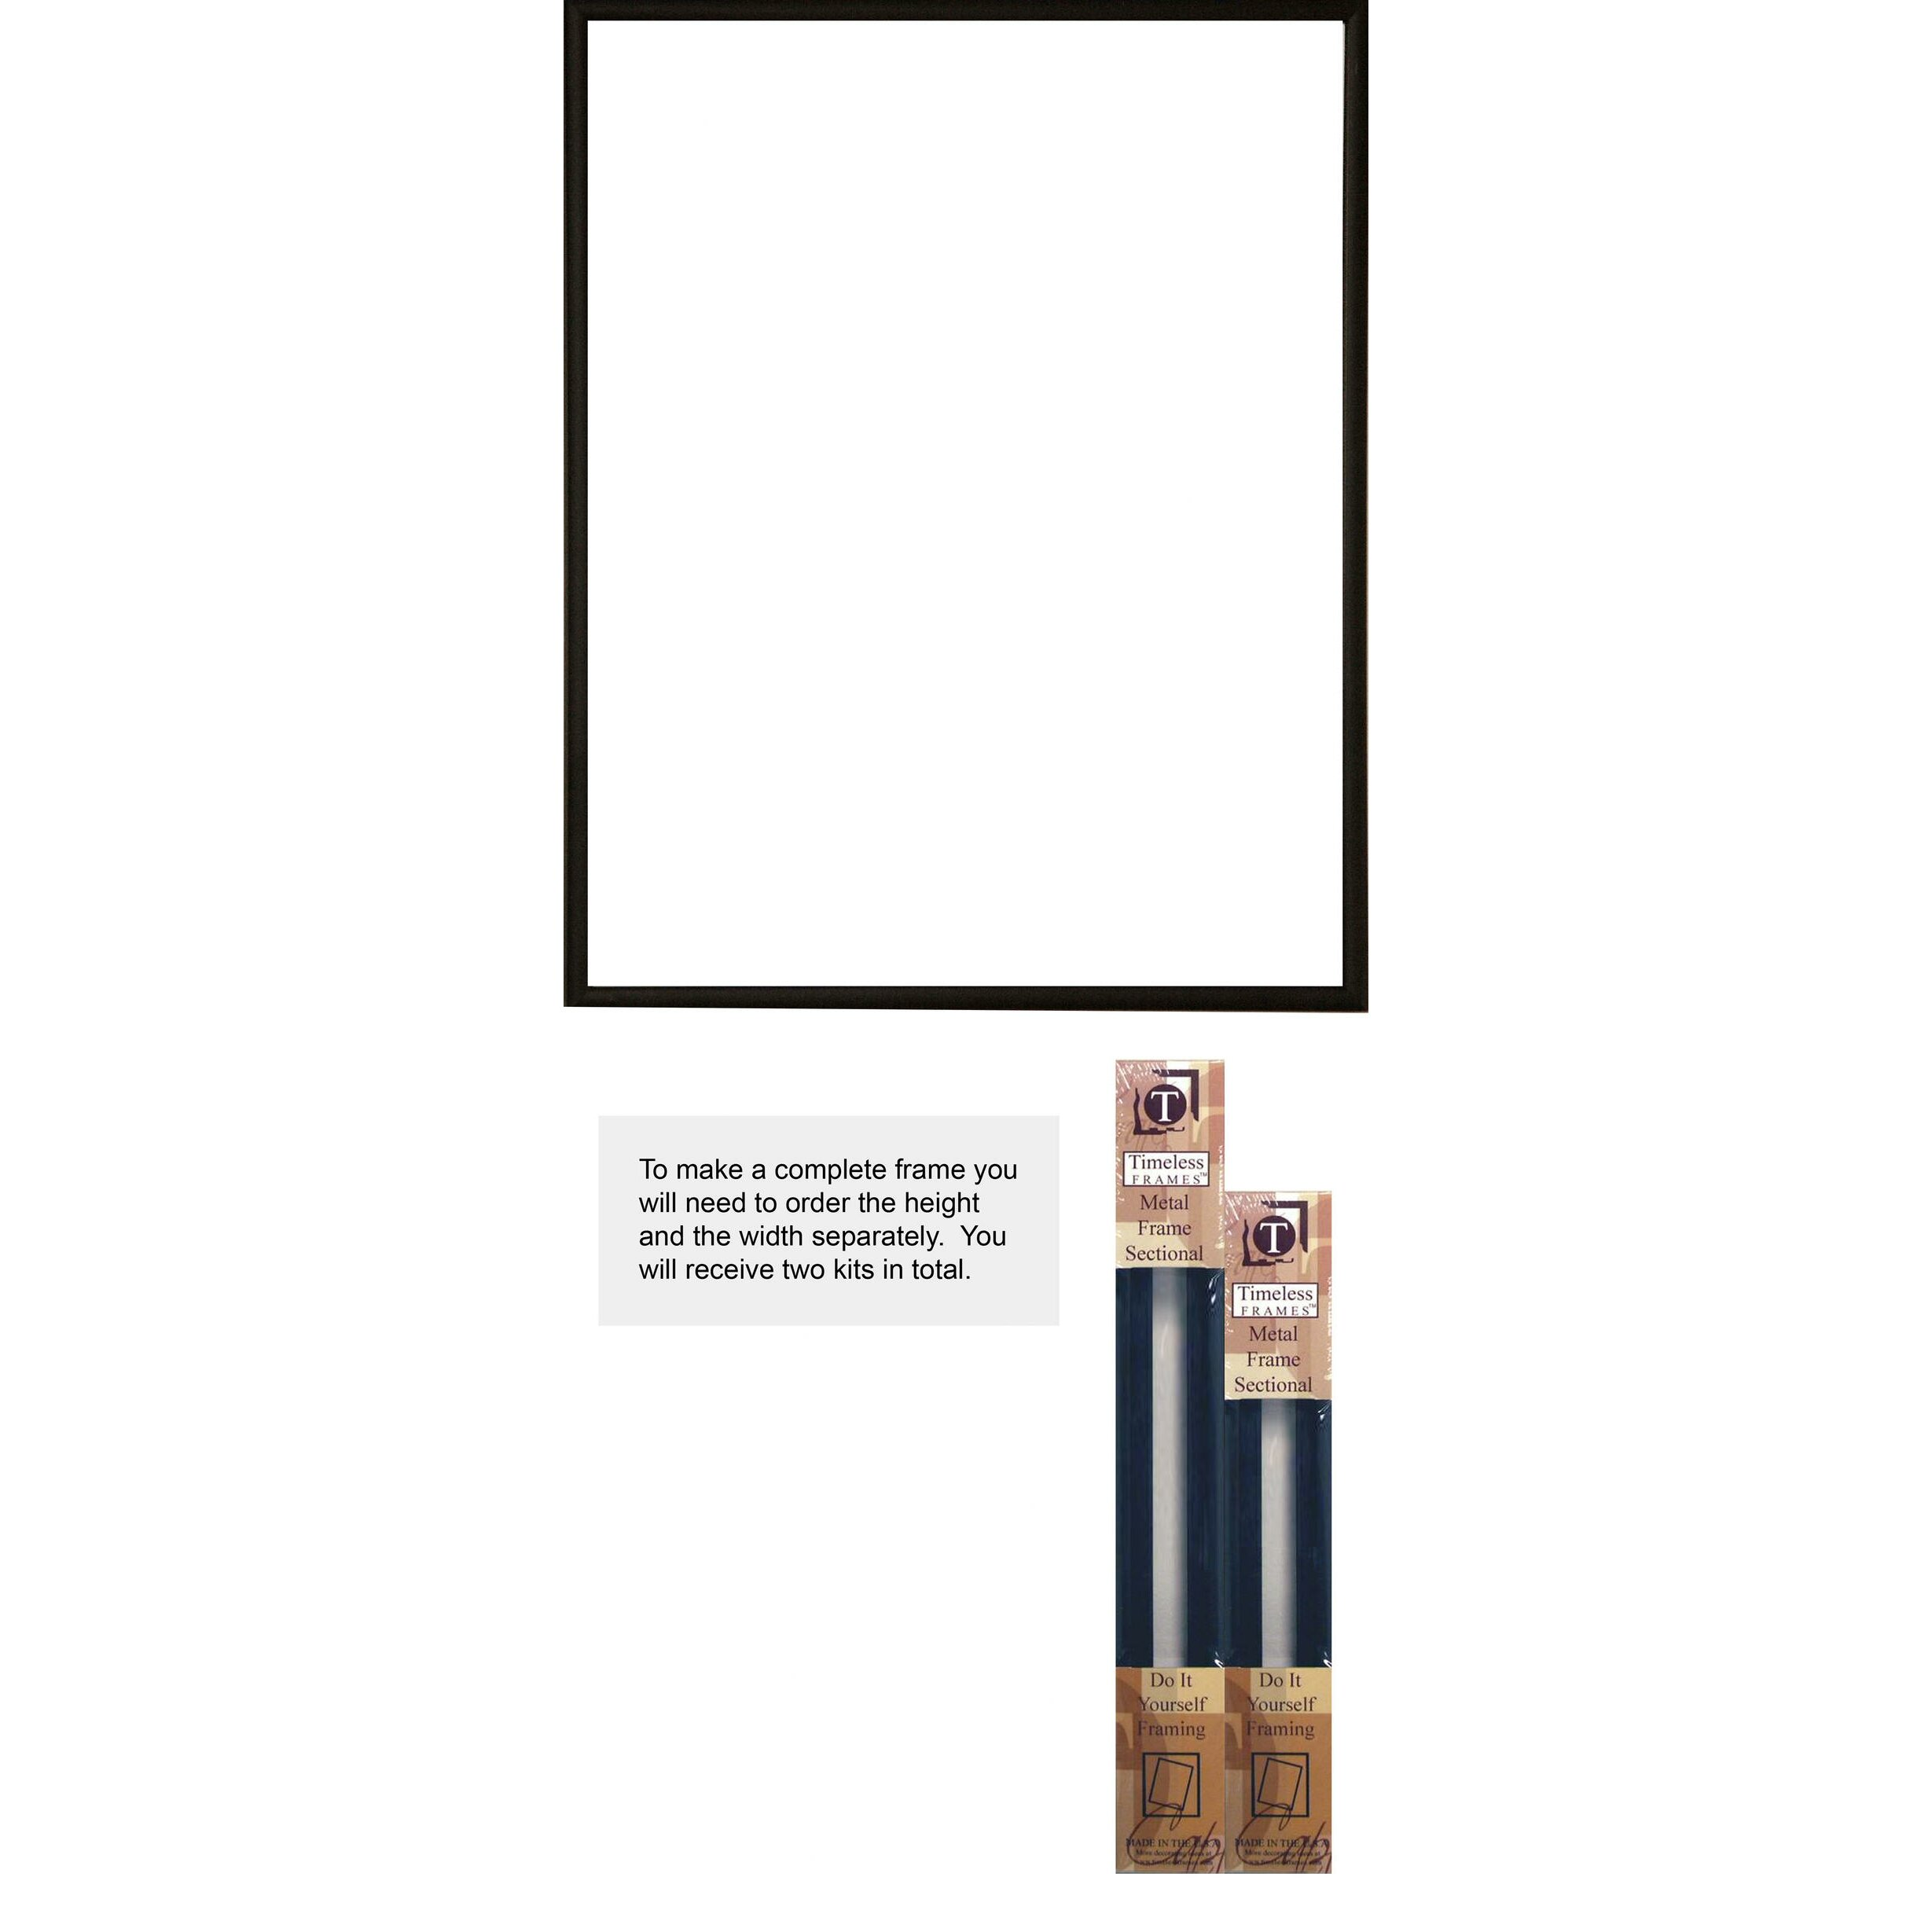 timeless frames robinson metal sectional do it yourself picture frame